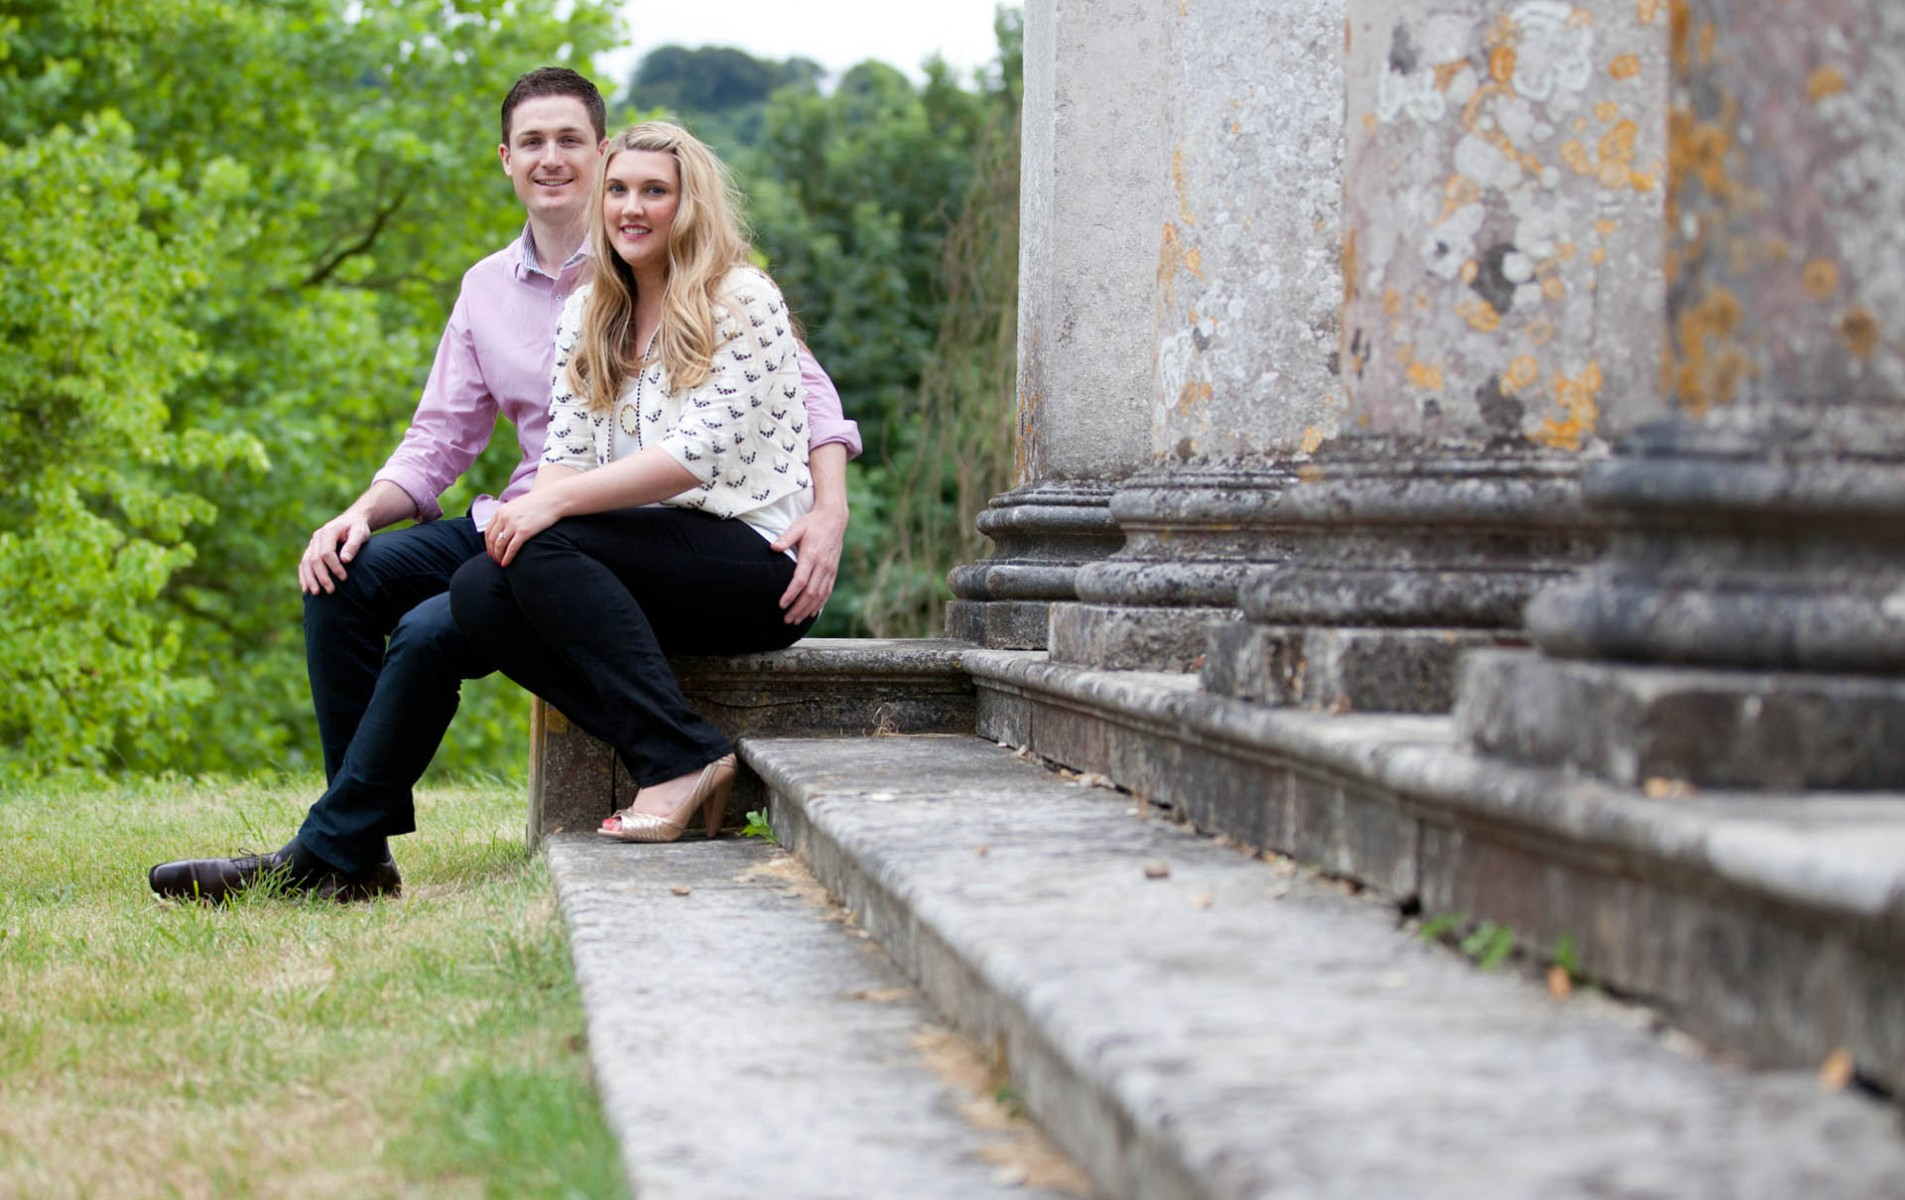 Berkshire Wedding Photographer - Emma and Tom's Engagement Shoot